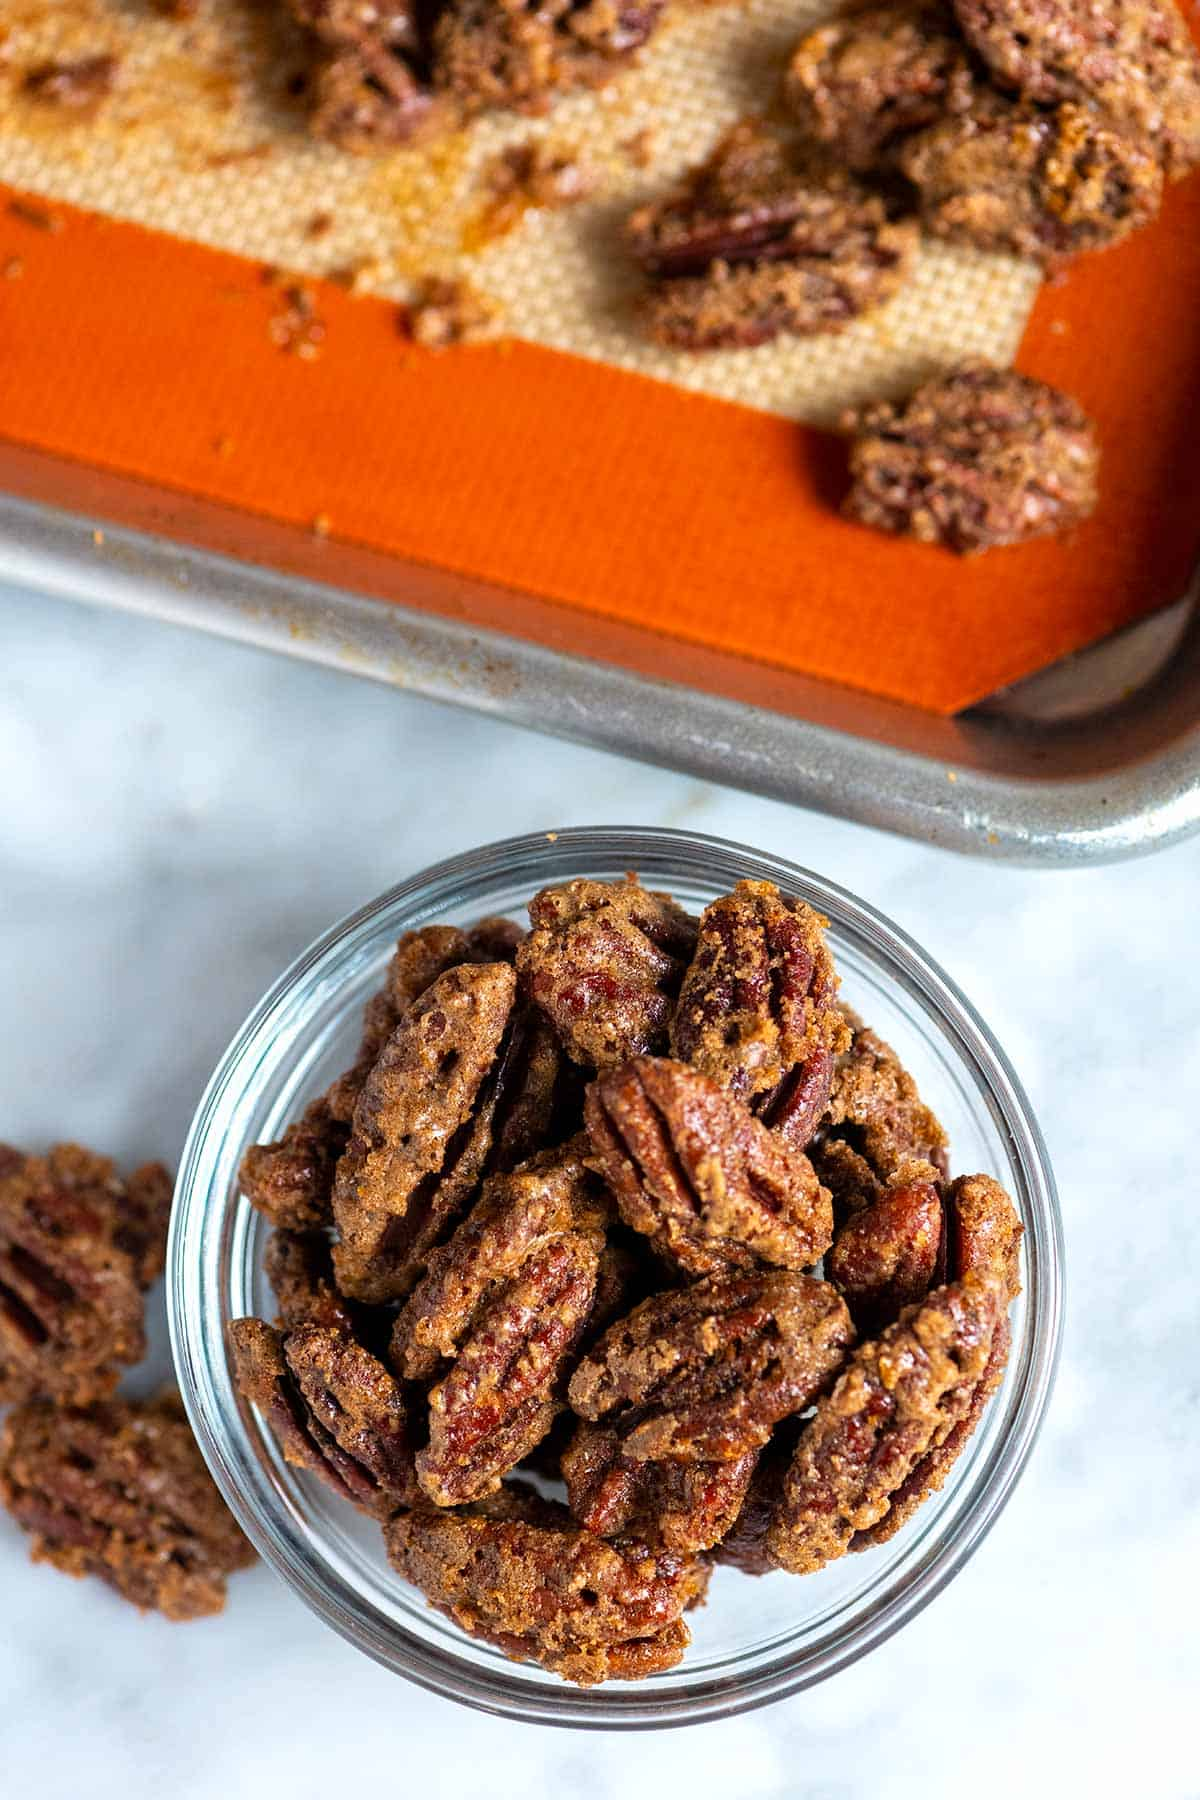 Oven baked candied pecans